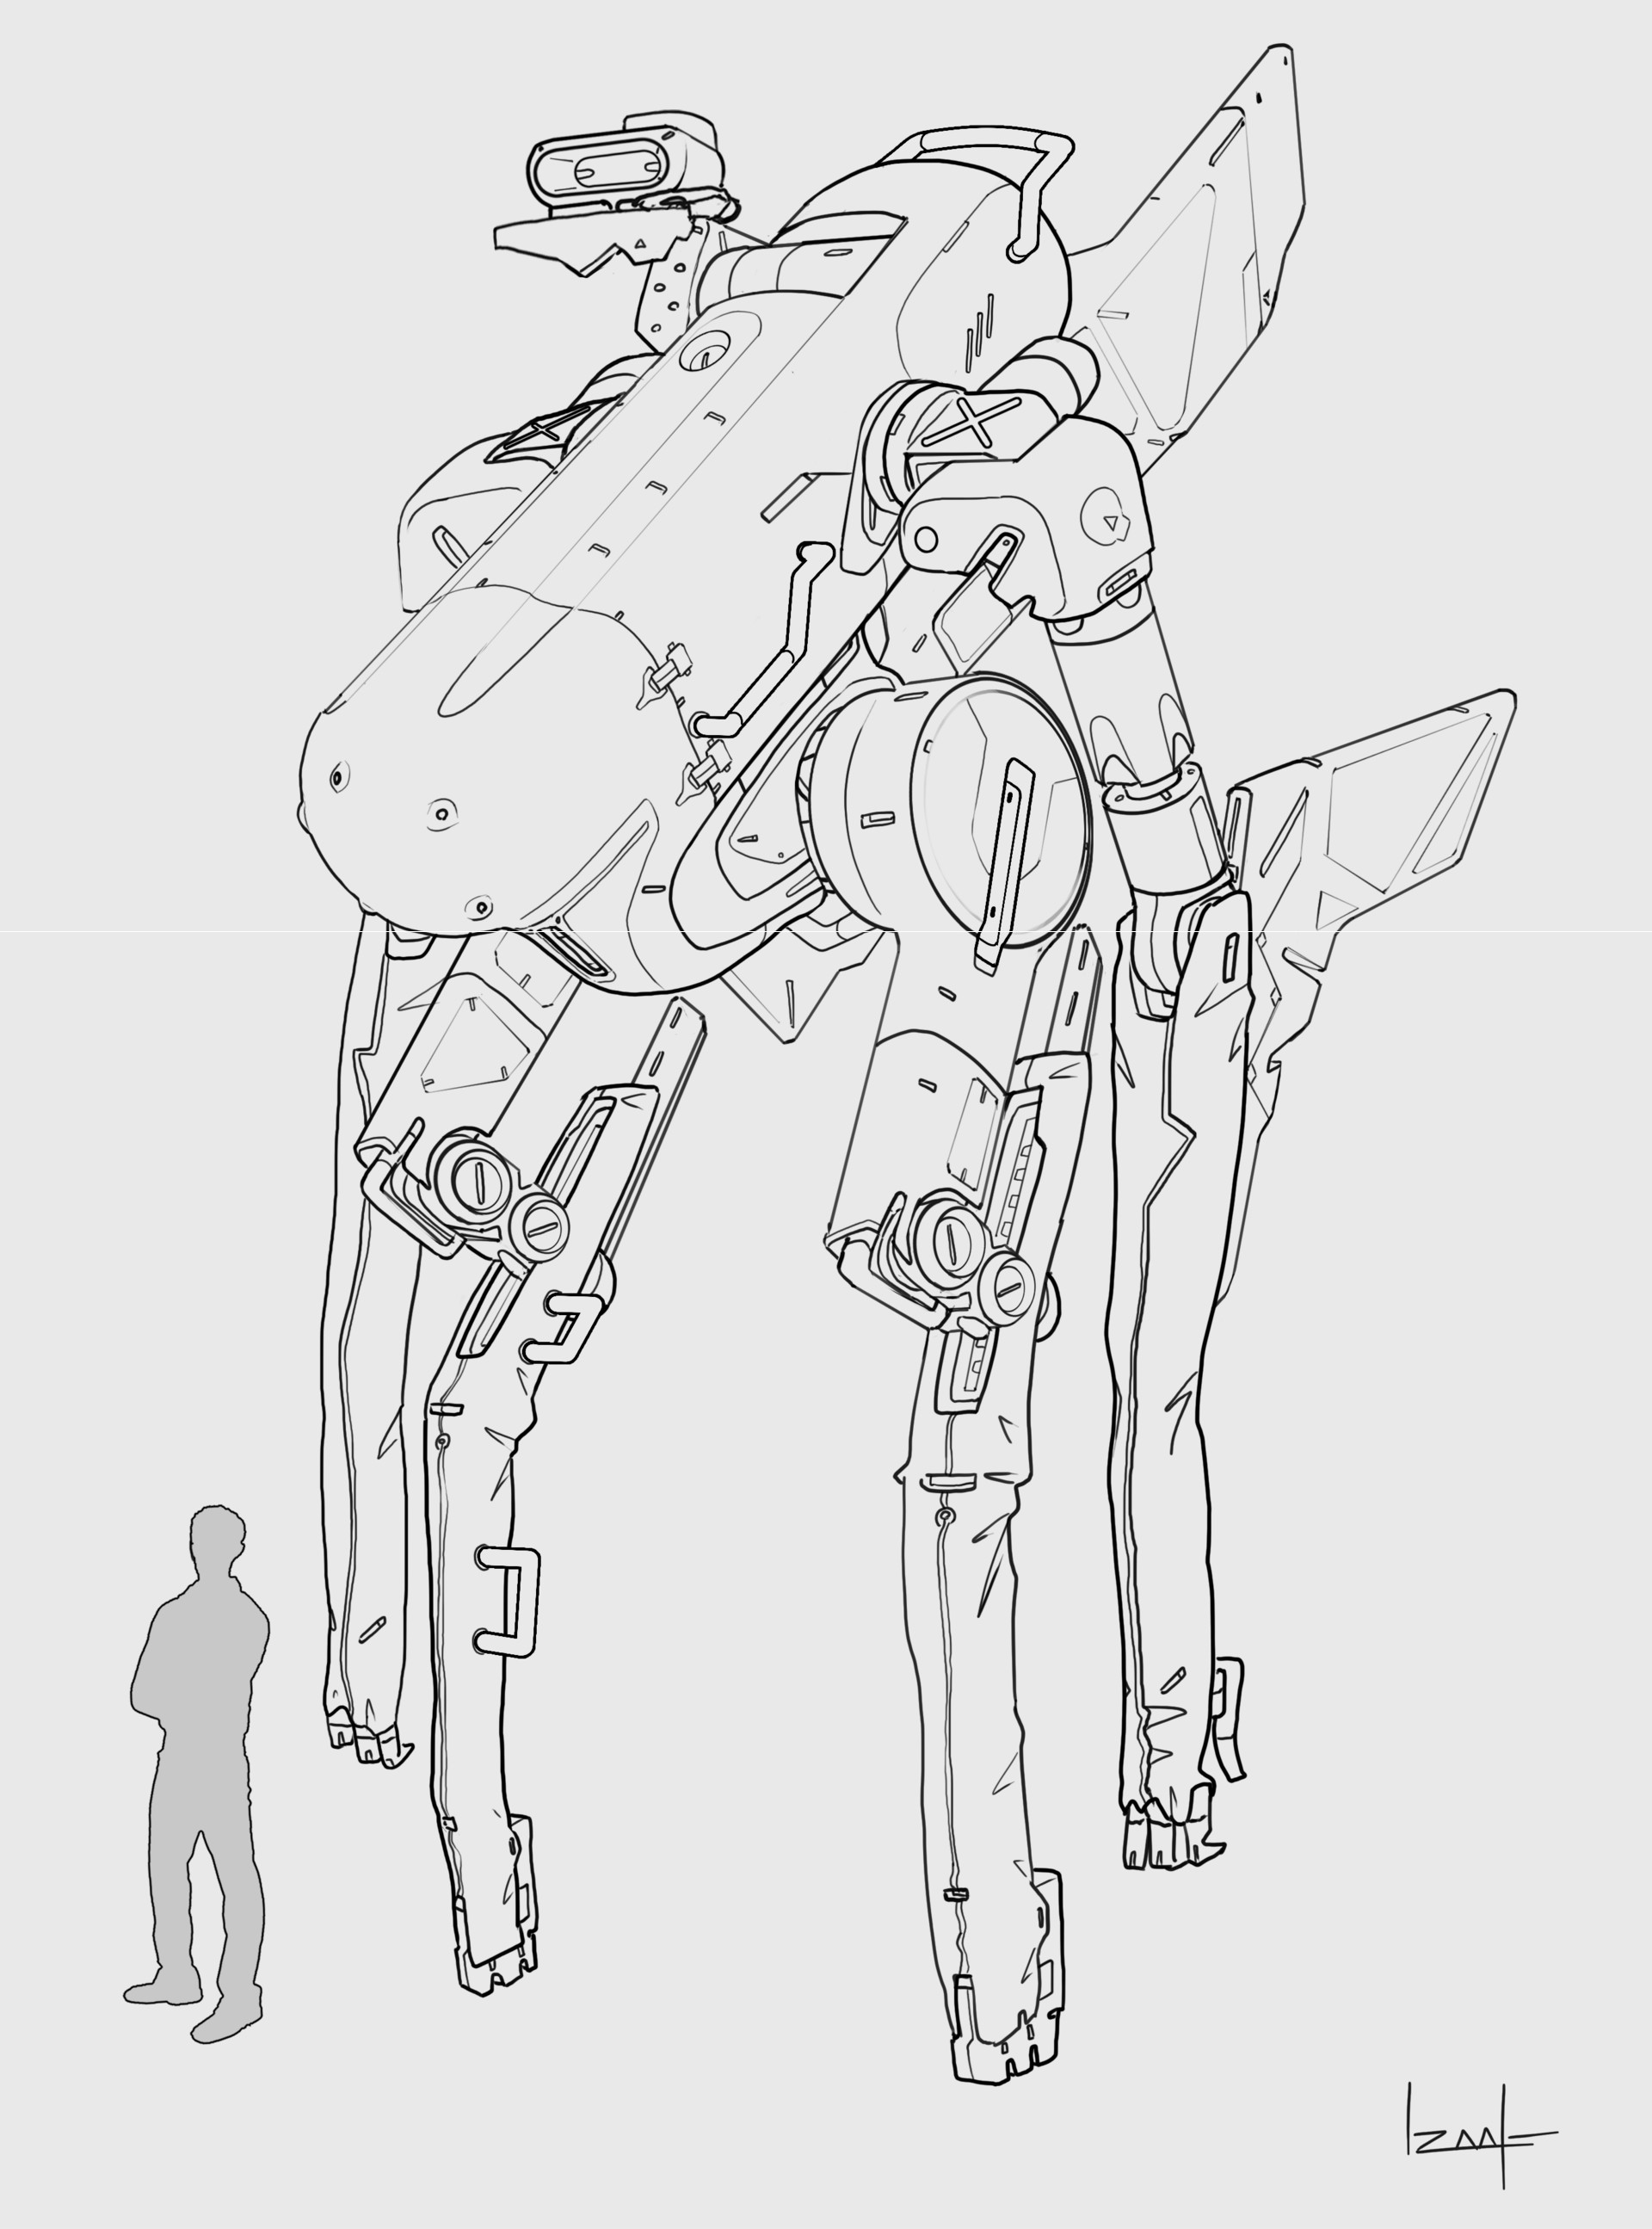 Izaak moody wk 5 mech sketch 3